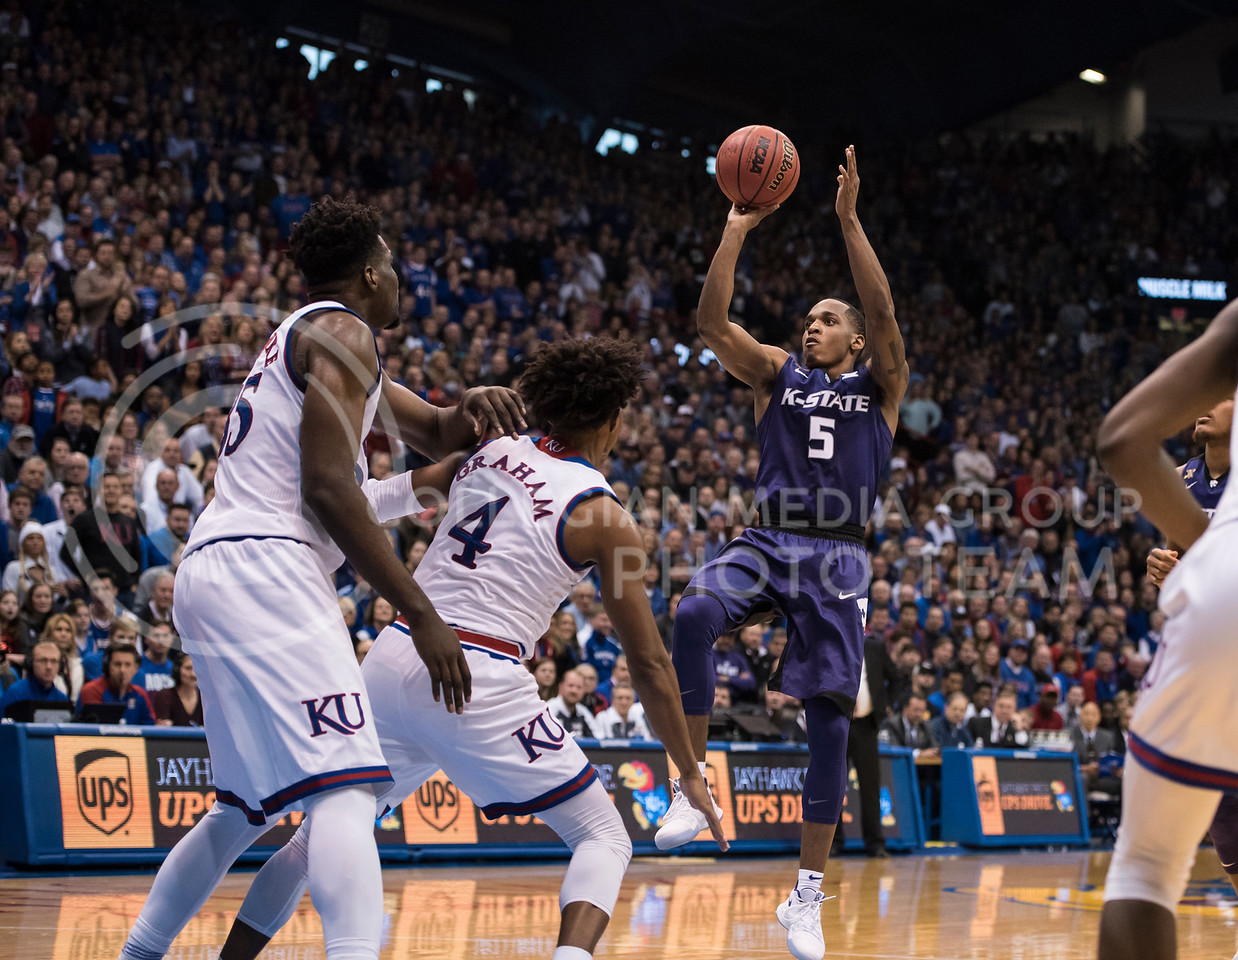 Kansas State Wildcat number 5, Barry Brown Jr., takes a shot during the basketball game against the Kansas Jayhawks at Allen Fieldhouse in Lawrence, Kan. on Jan. 13, 2018. (Olivia Bergmeier | Collegian Media Group)